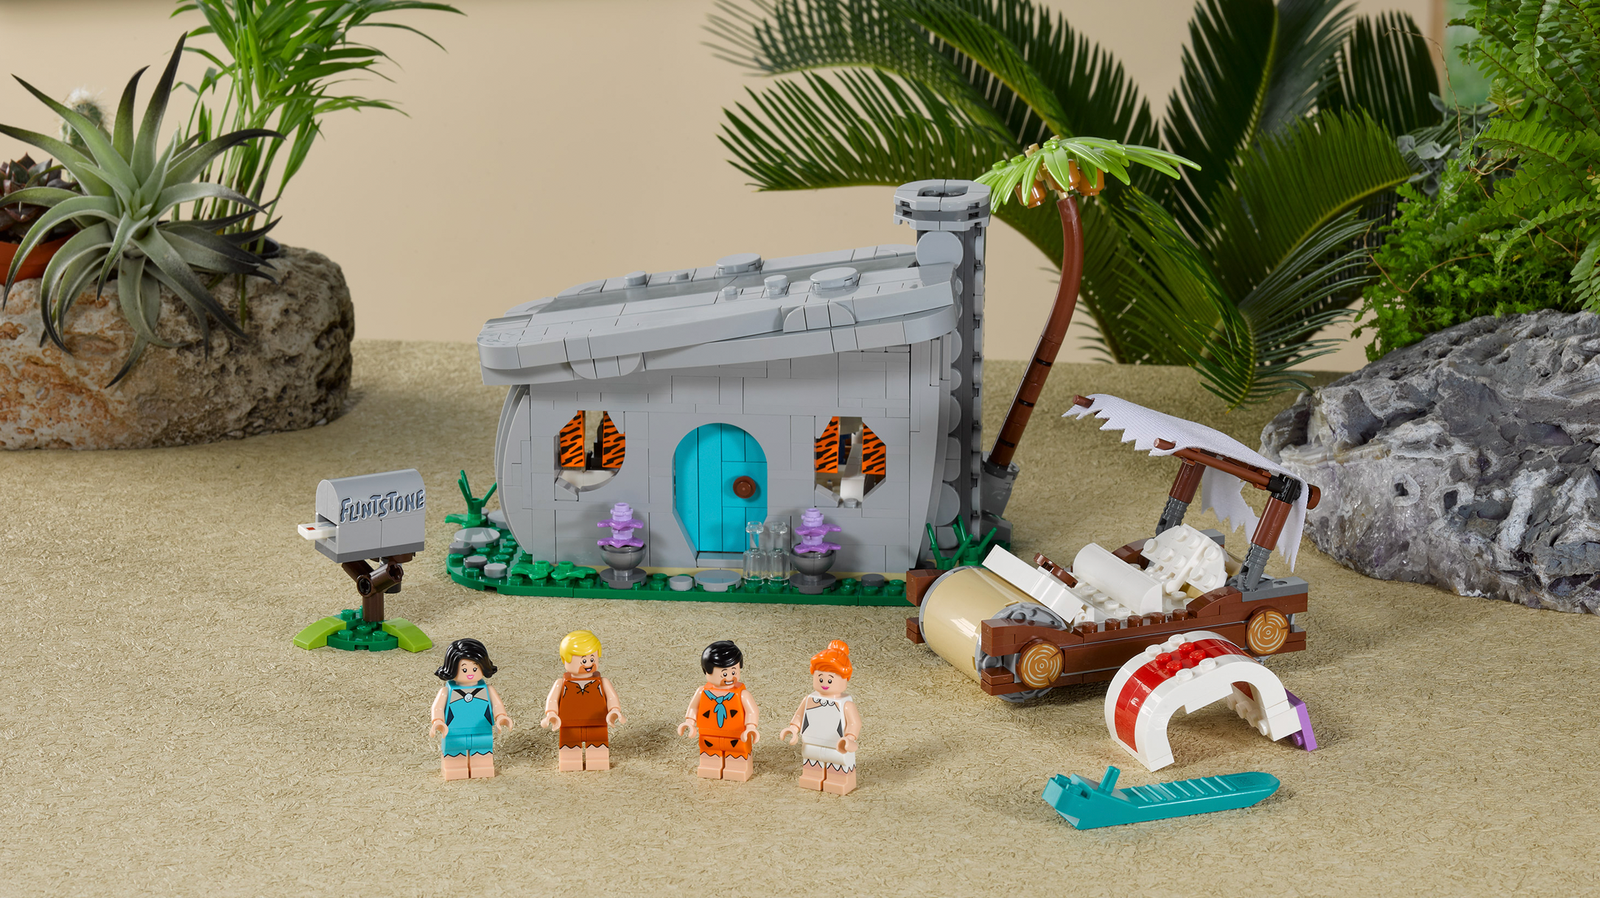 Lego Ideas - Σελίδα 20 6097823-Flintstones--Crop-thumbnail-full